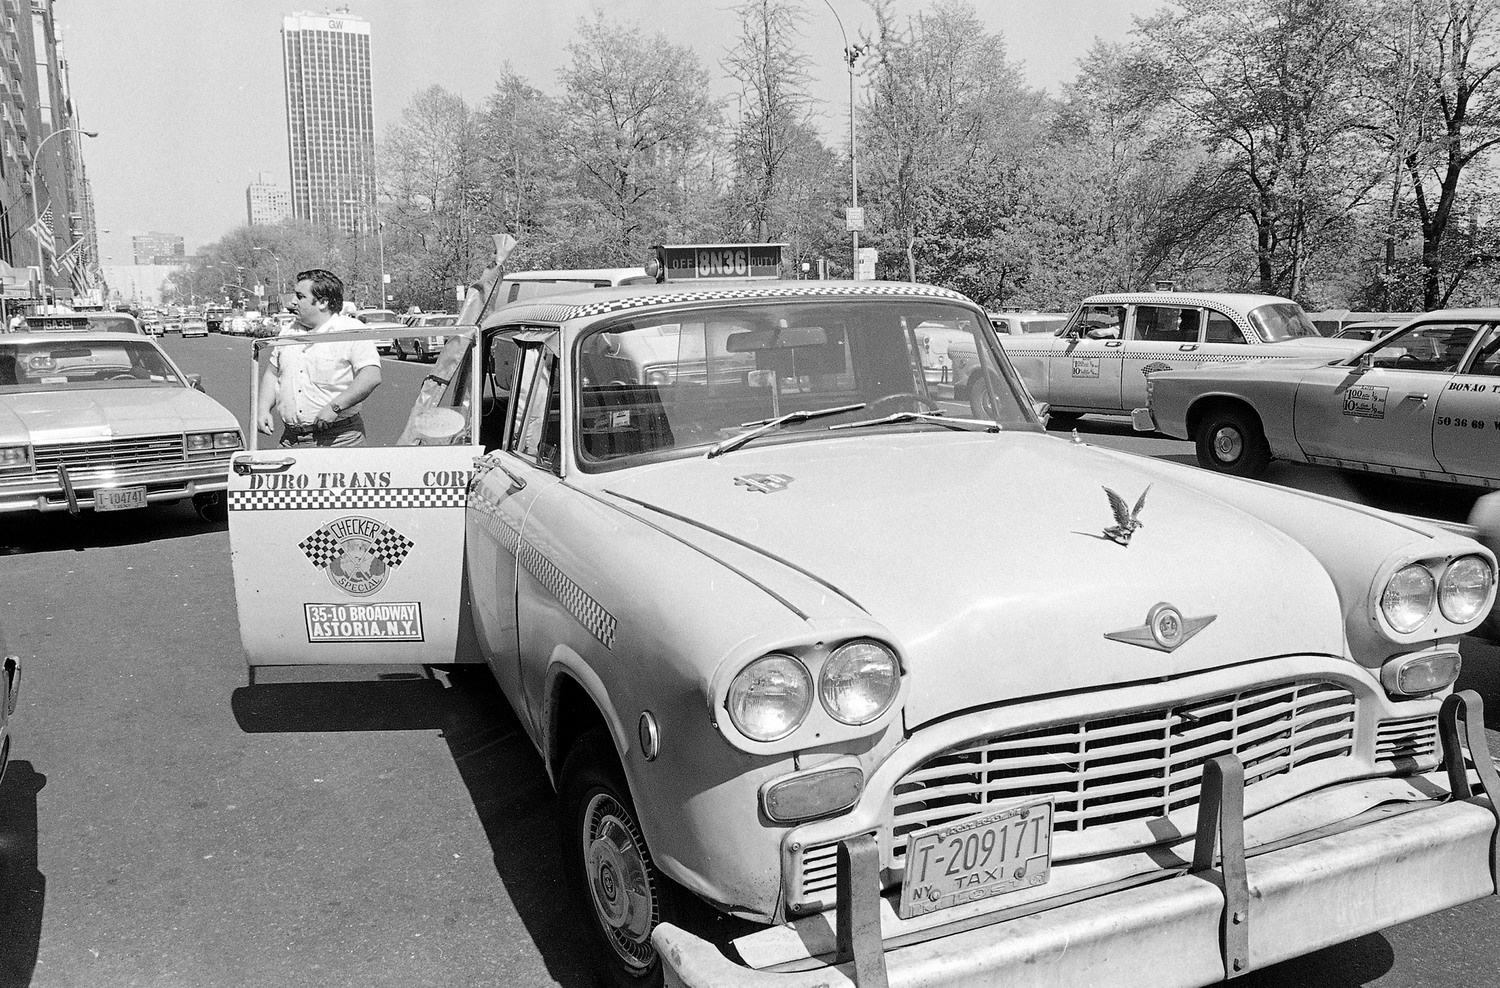 A checkered cab is pulled over on New York's Central Park South, May 4, 1982, right around the time that the Checkered Motor Co. announced it was going out of production.